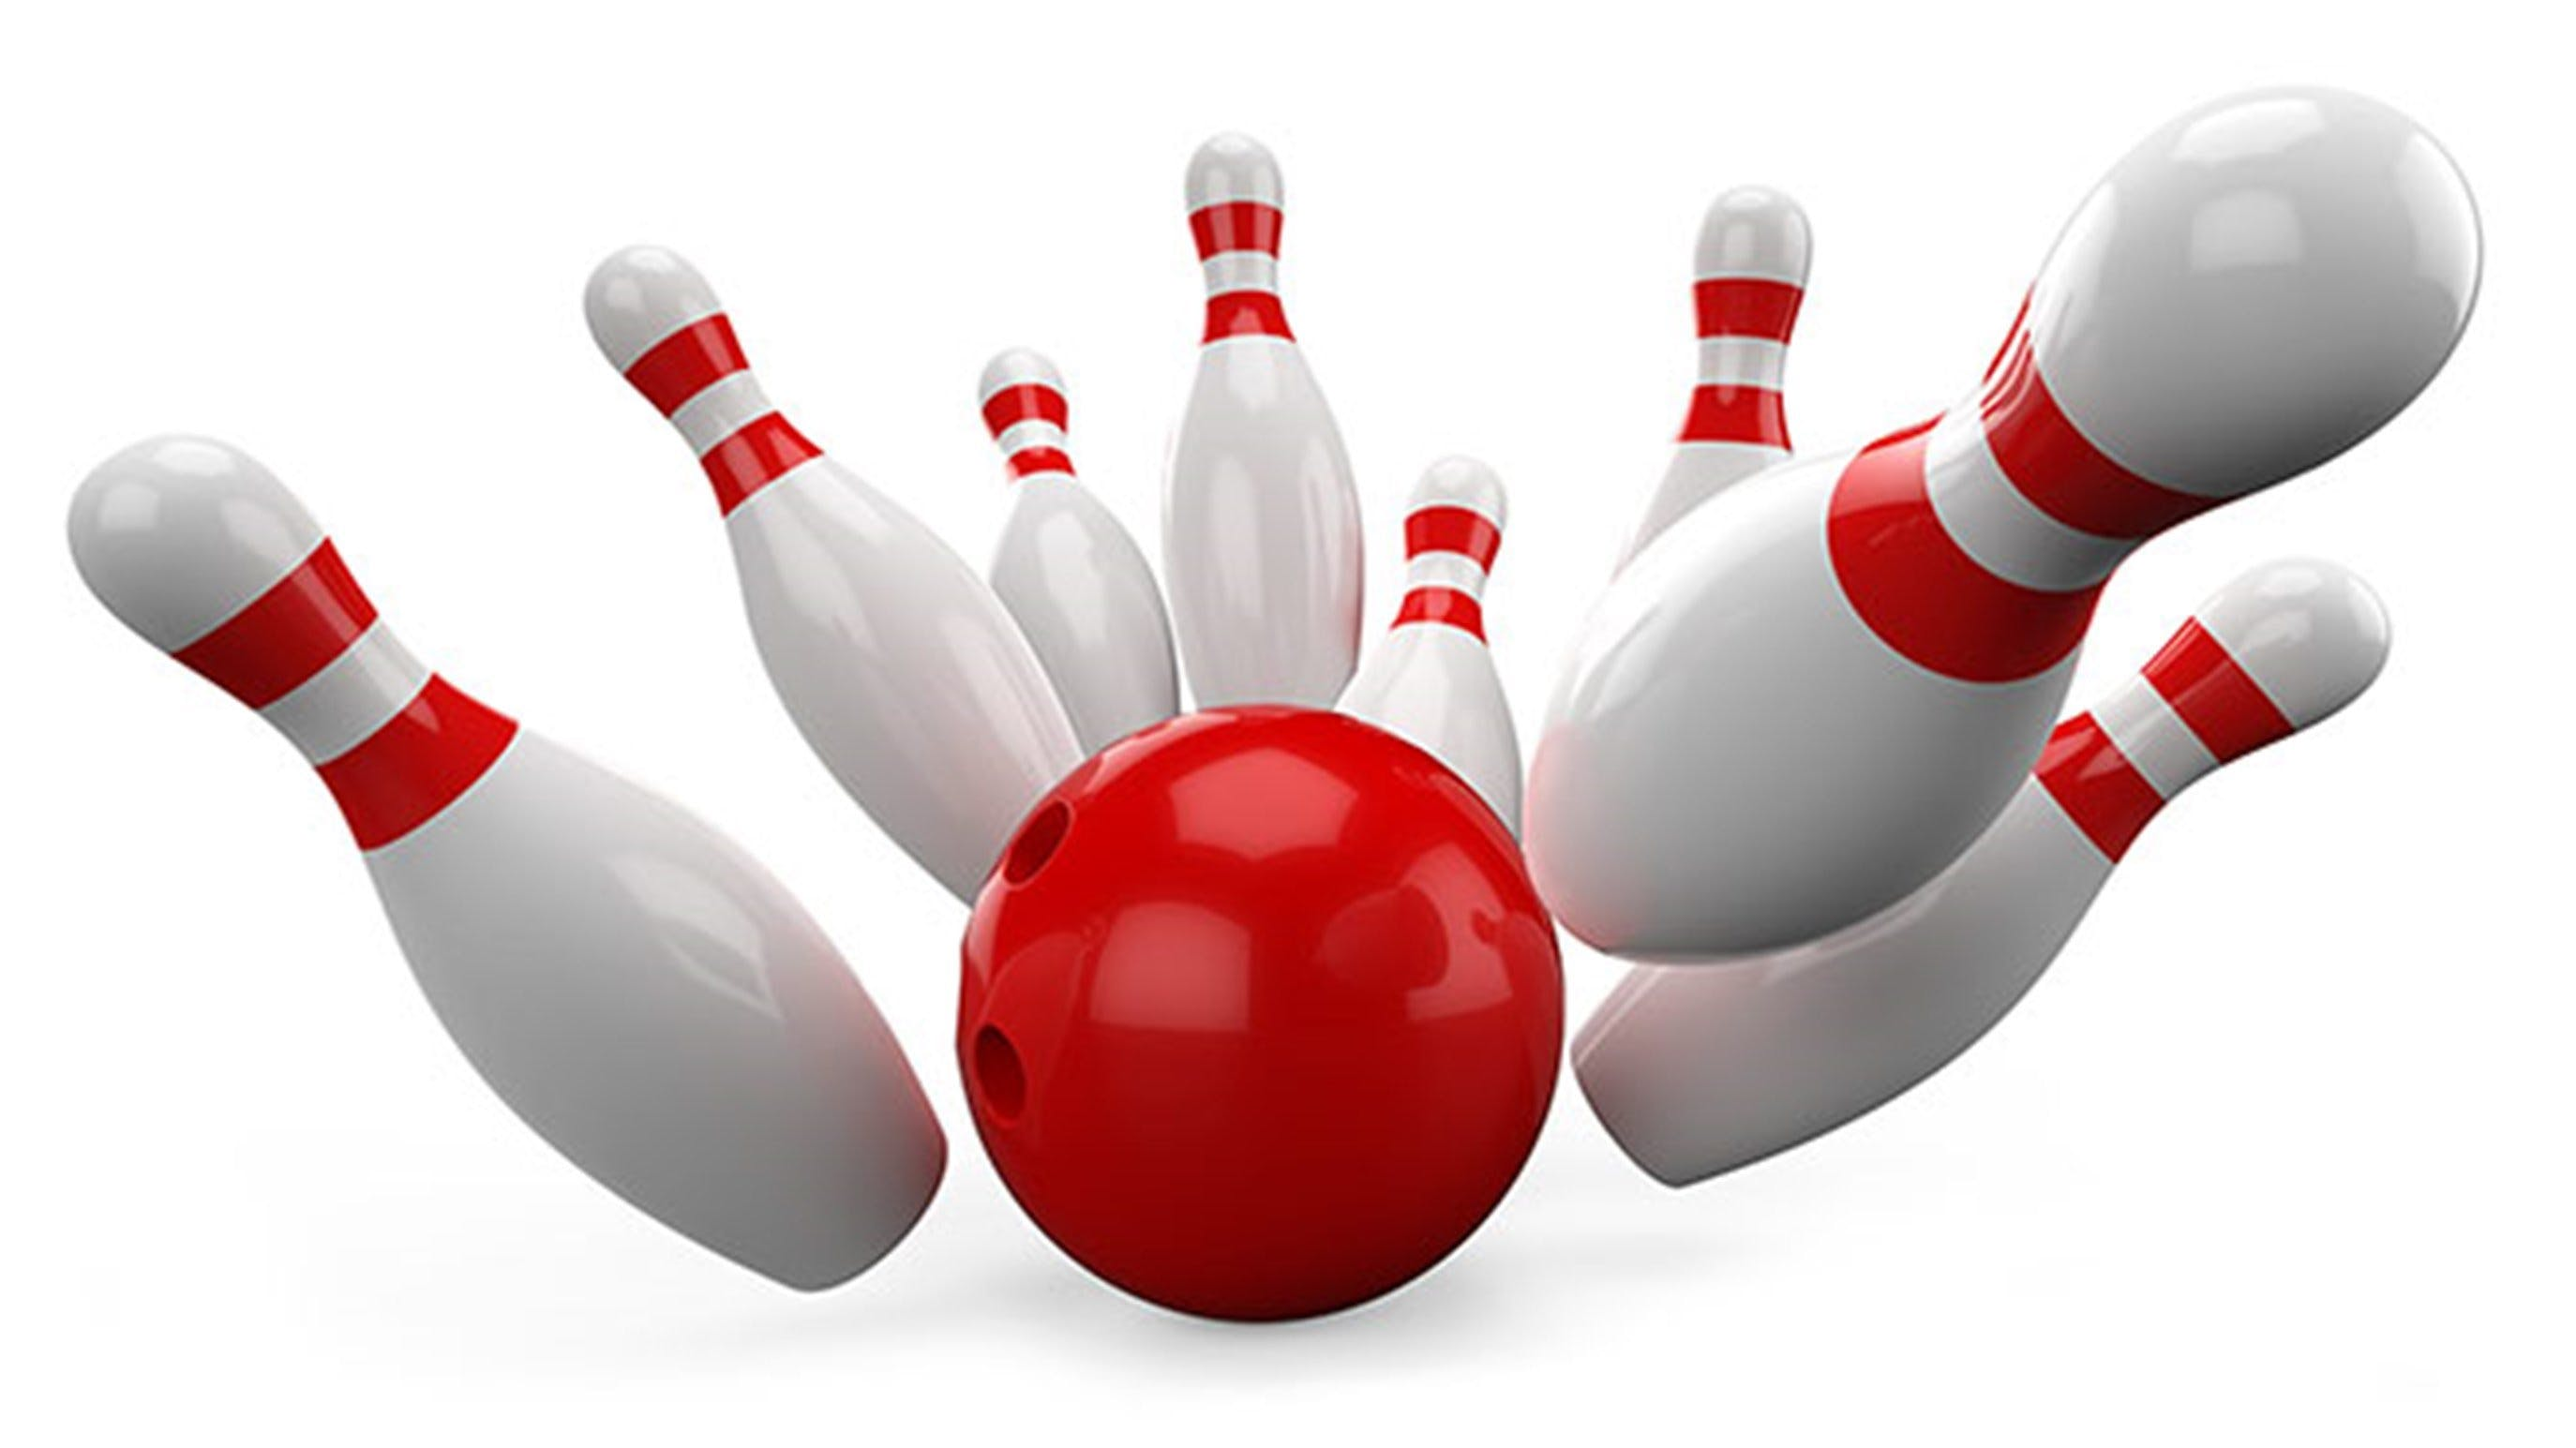 Shellharbour Tenpin Bowl - Broome Tourism